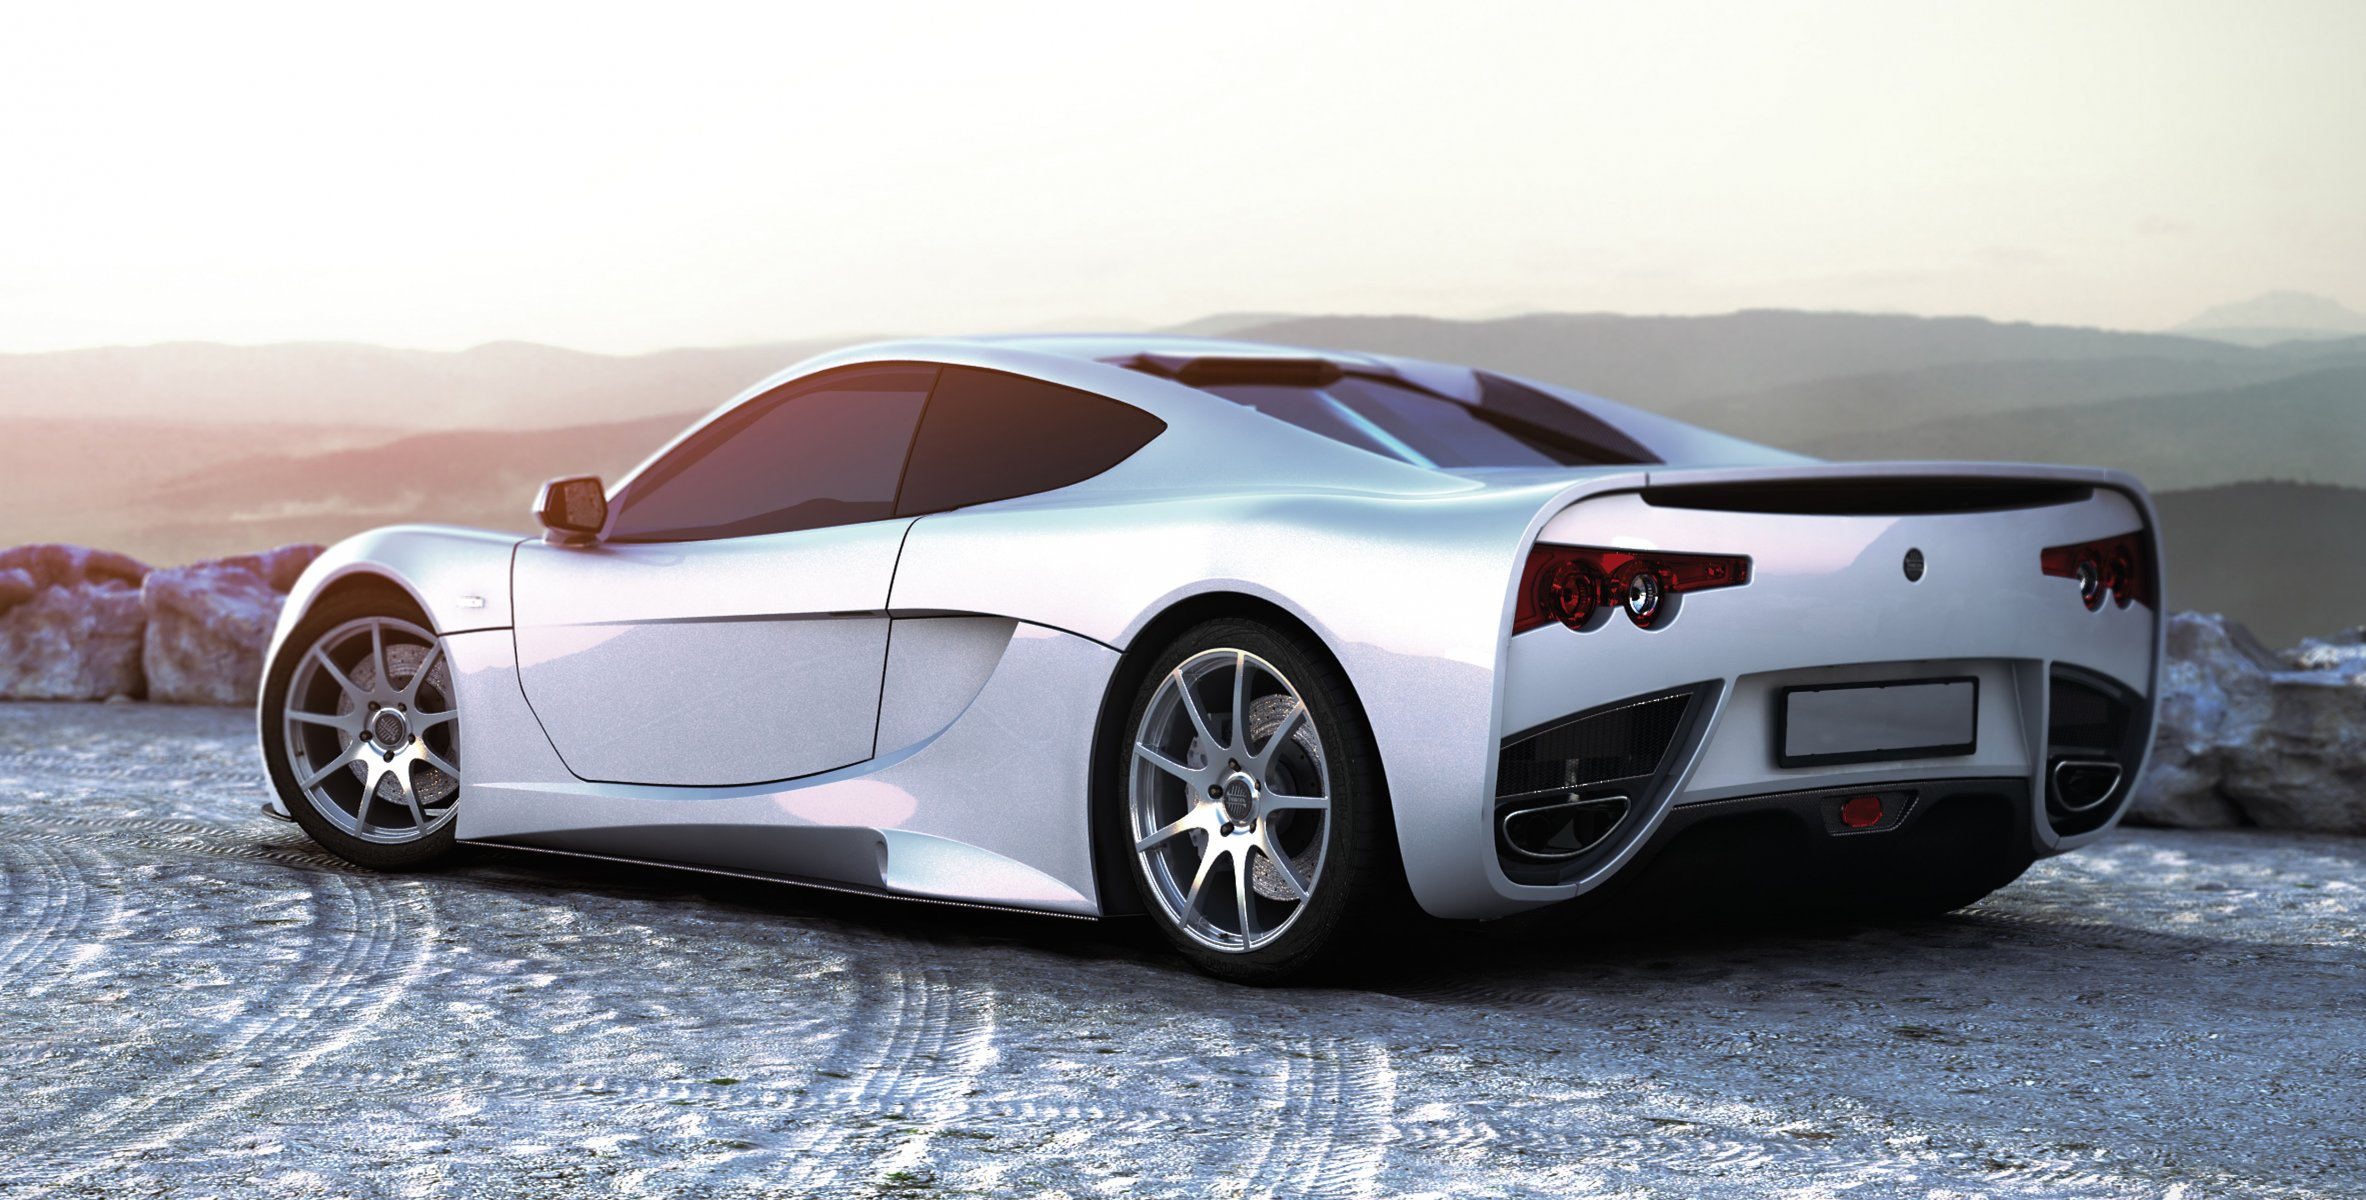 vencer, supercar, speed, Uk, boutique, design, car